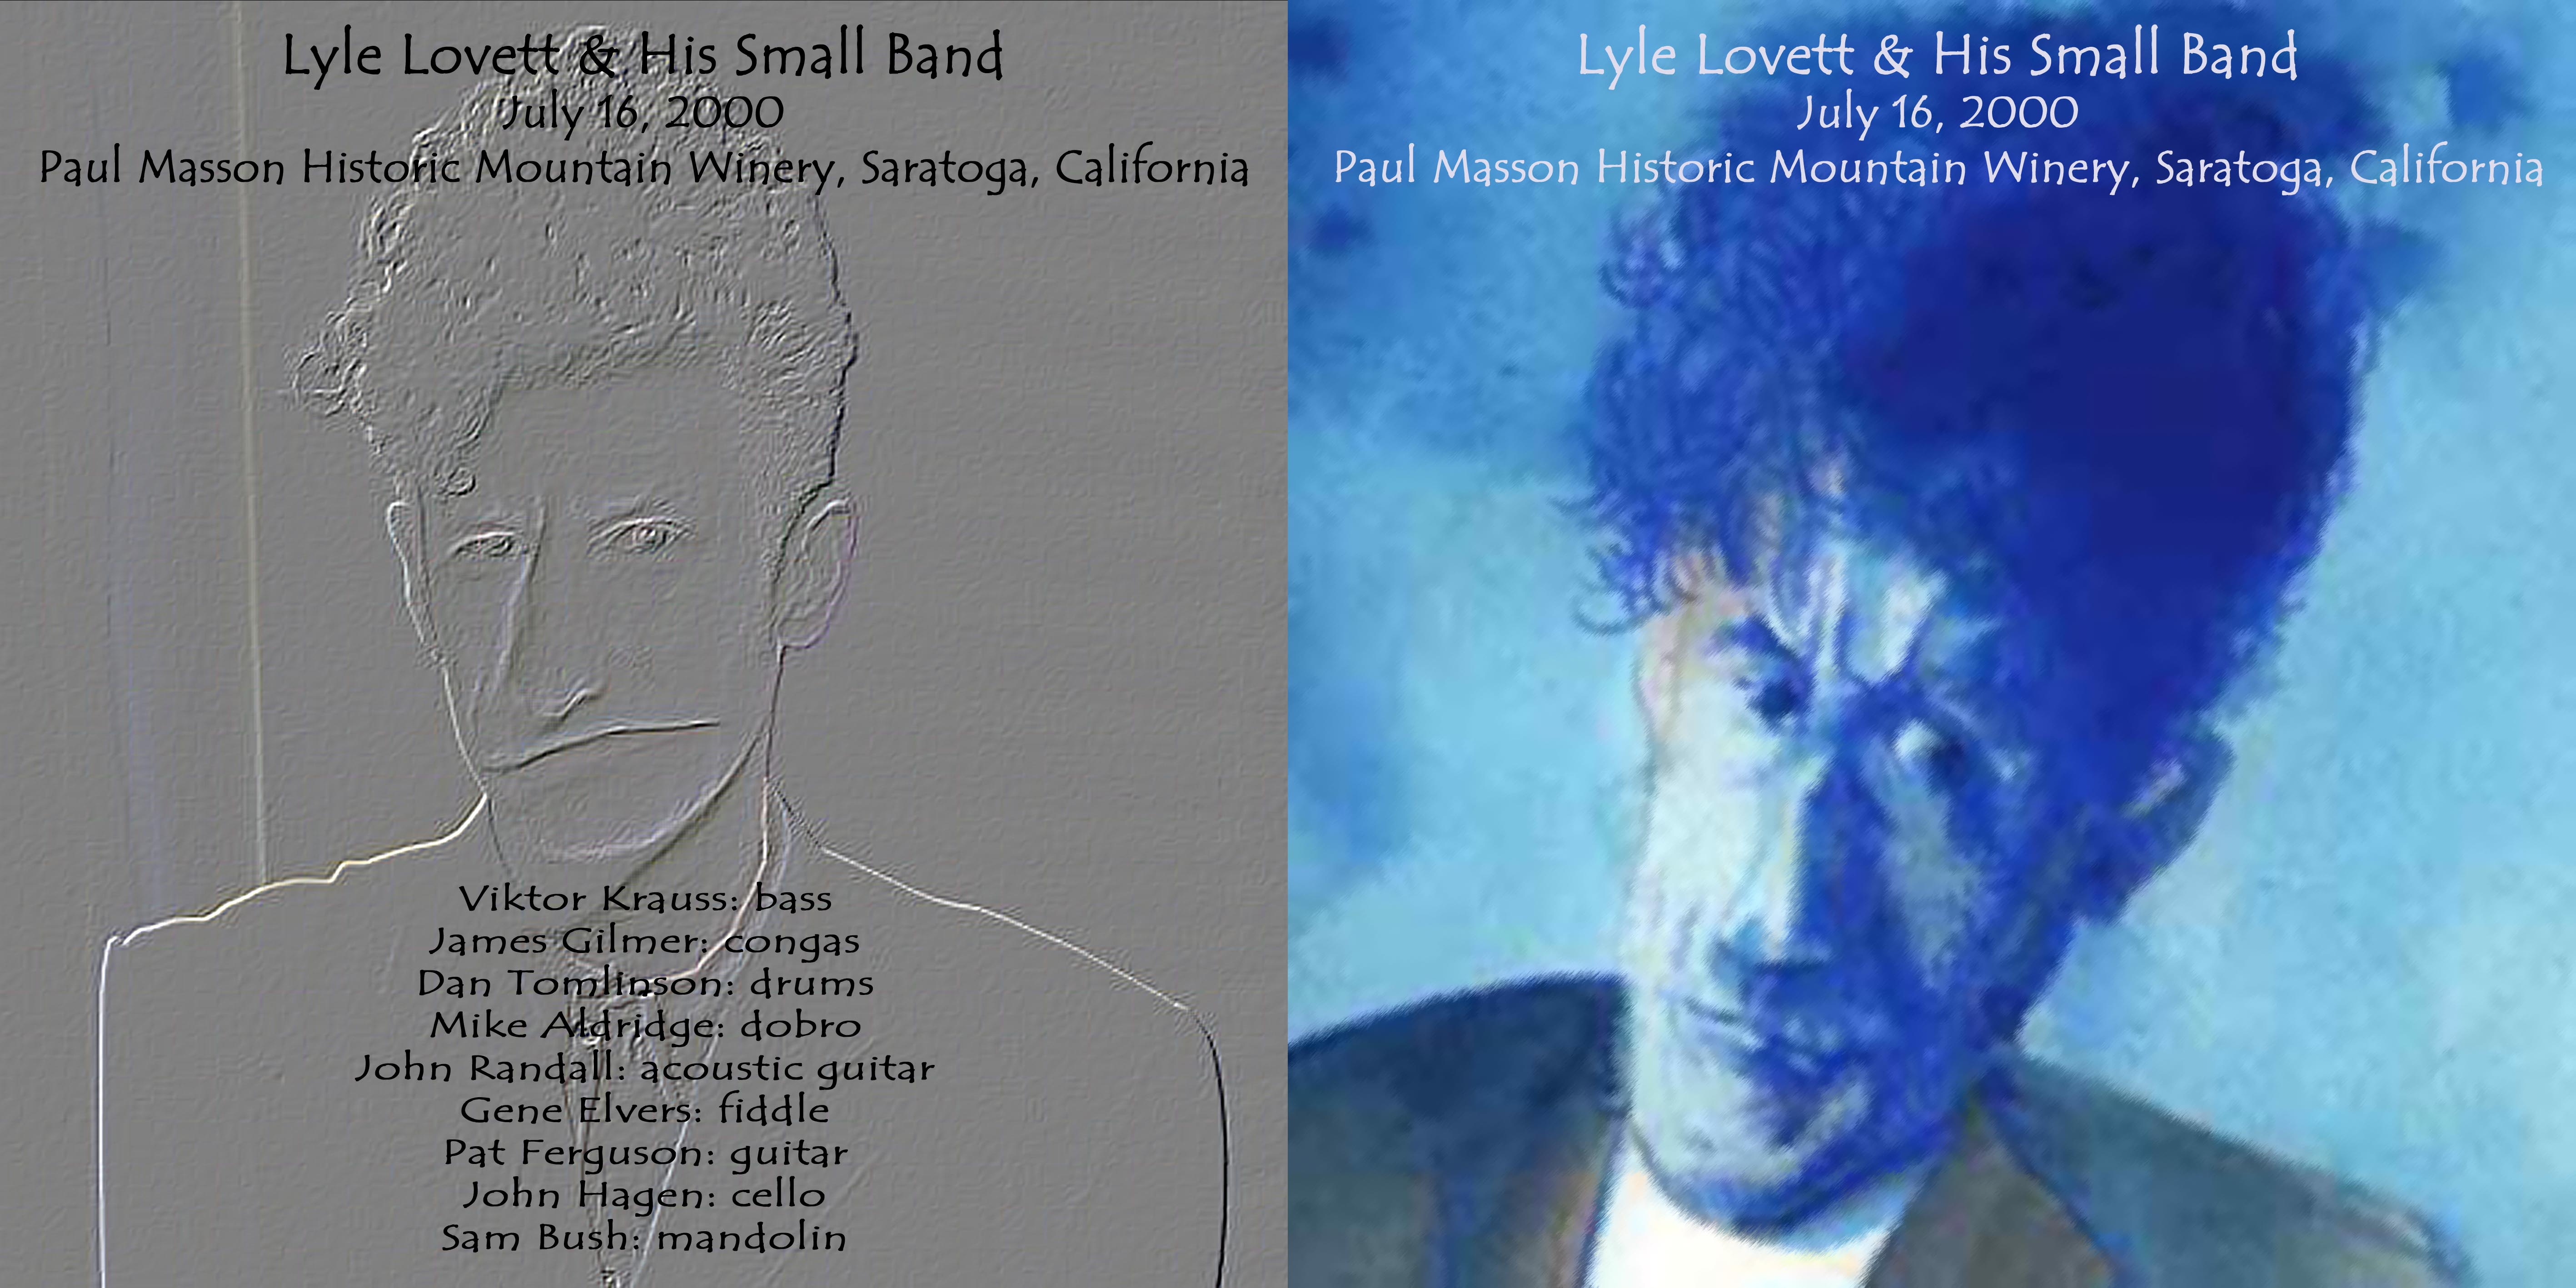 https://ia801500.us.archive.org/22/items/lyle_lovett_2000-07-16_Saratoga_CA/album.jpg?cnt=0